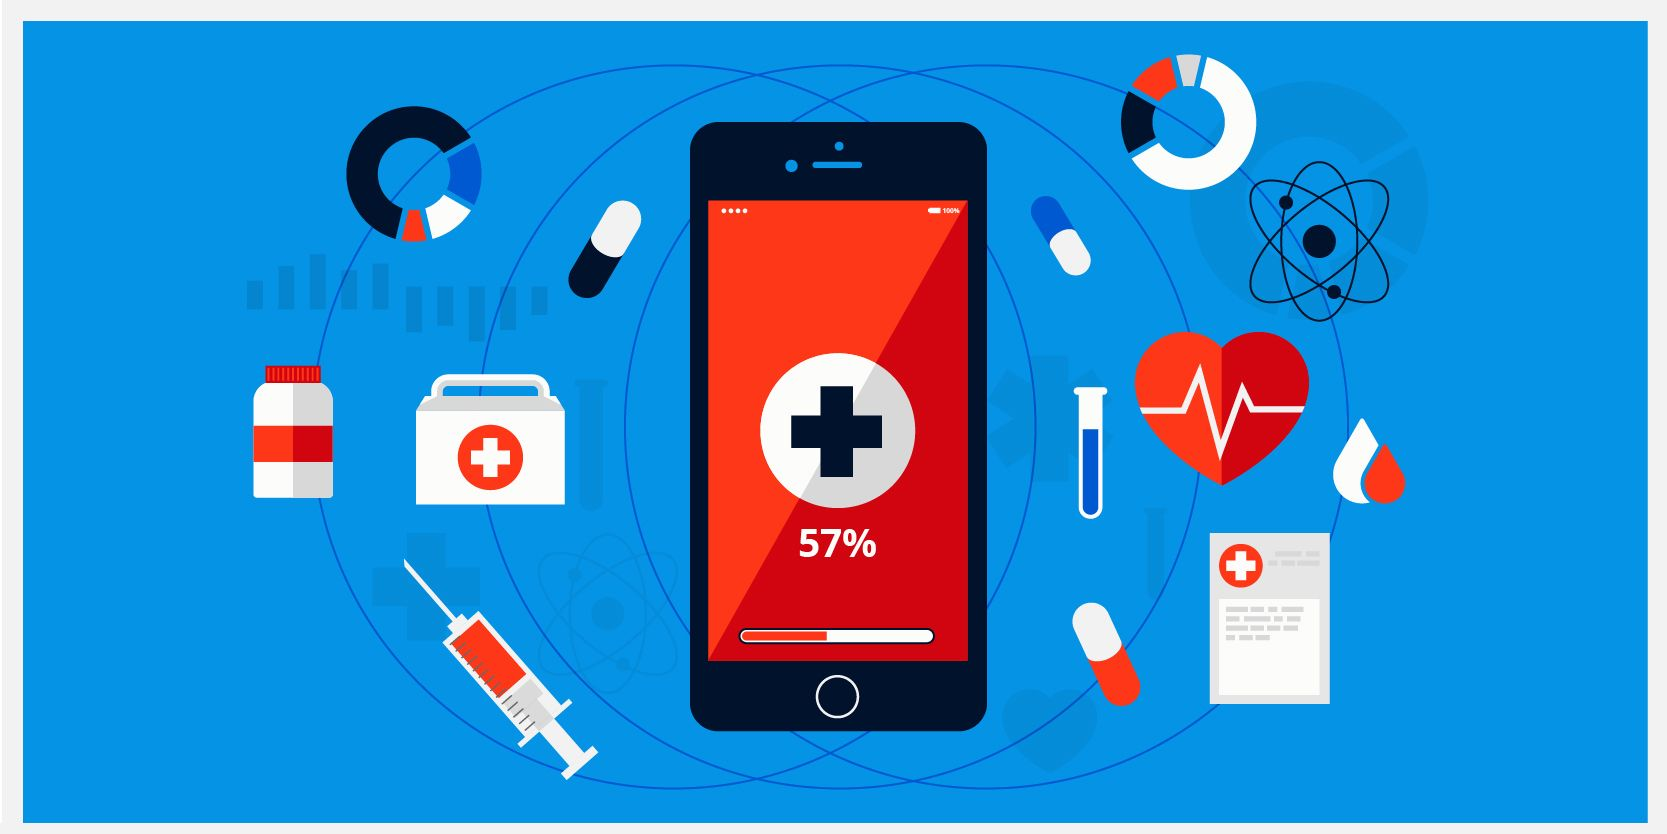 Build smart infrastructure in healthcare with iot based